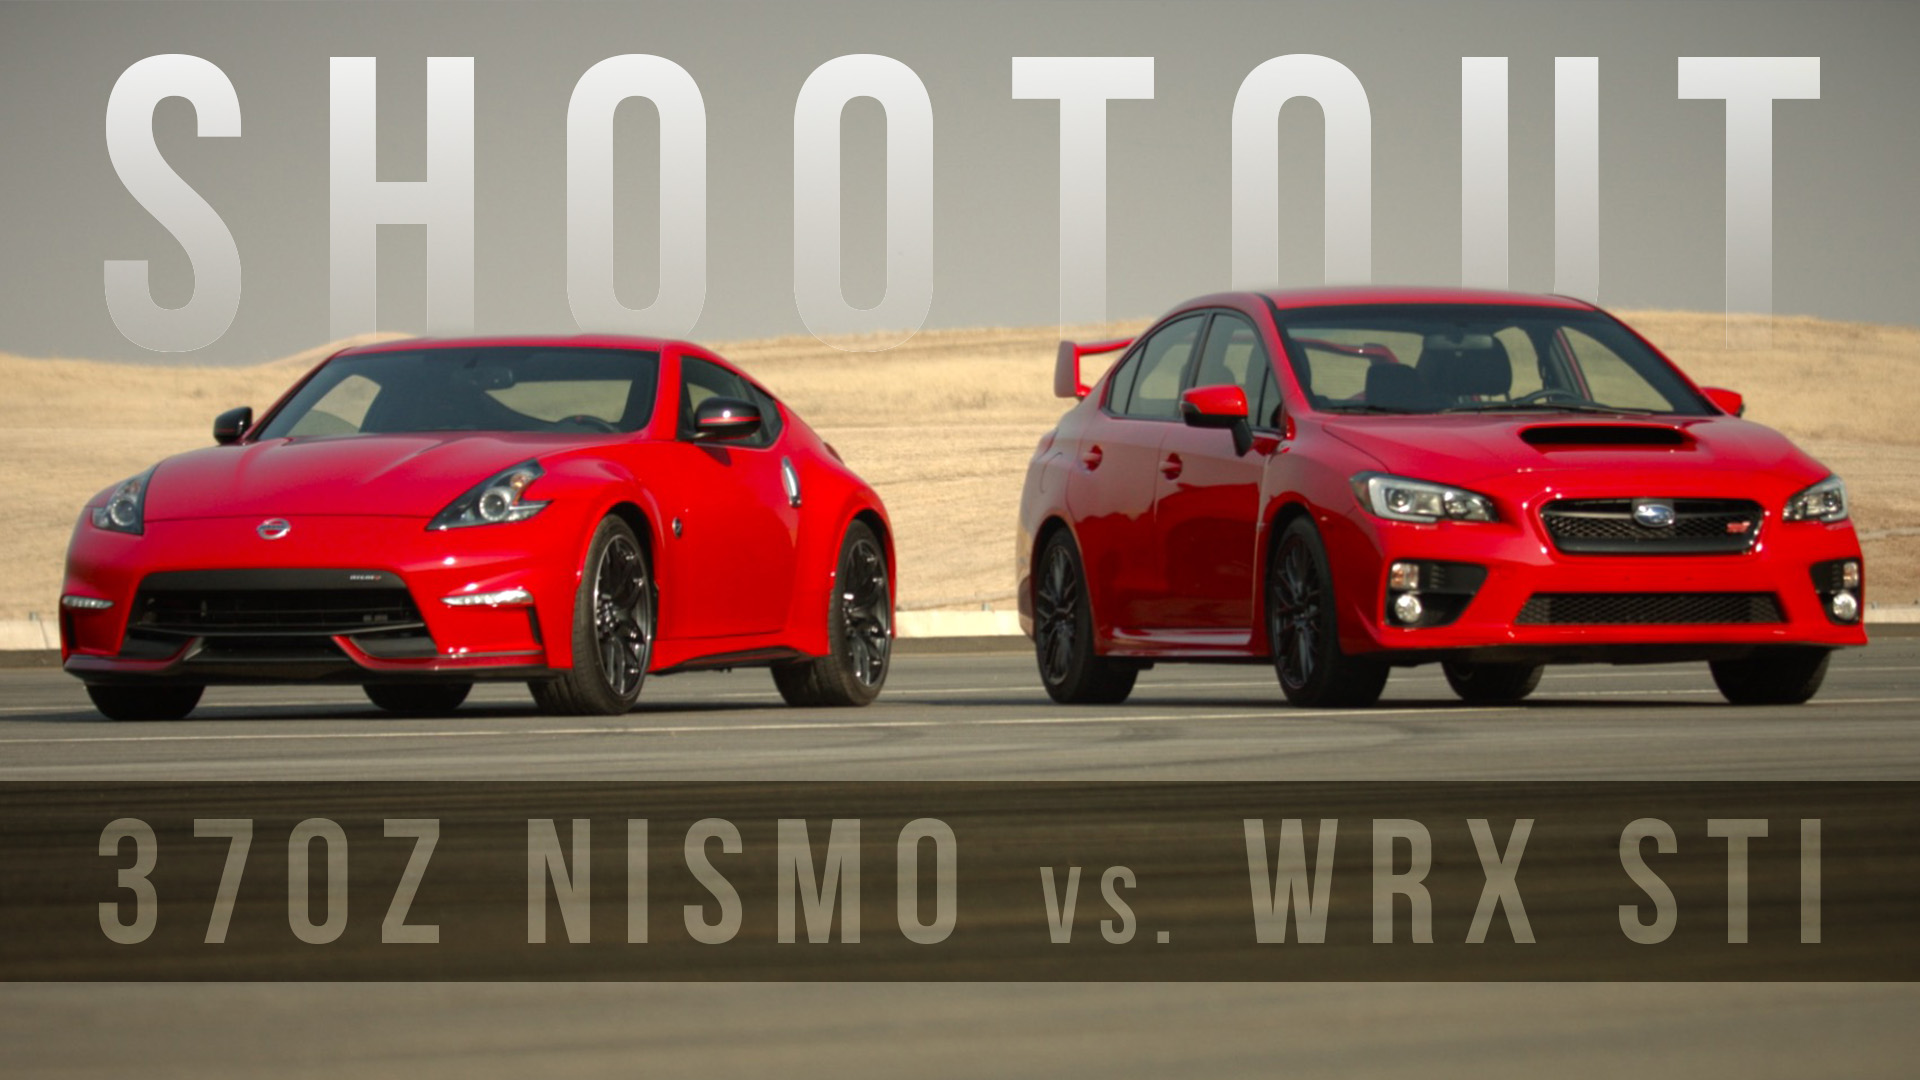 Video: Shootout: Nissan 370Z Nismo vs. Subaru WRX STI are red-hot track toys